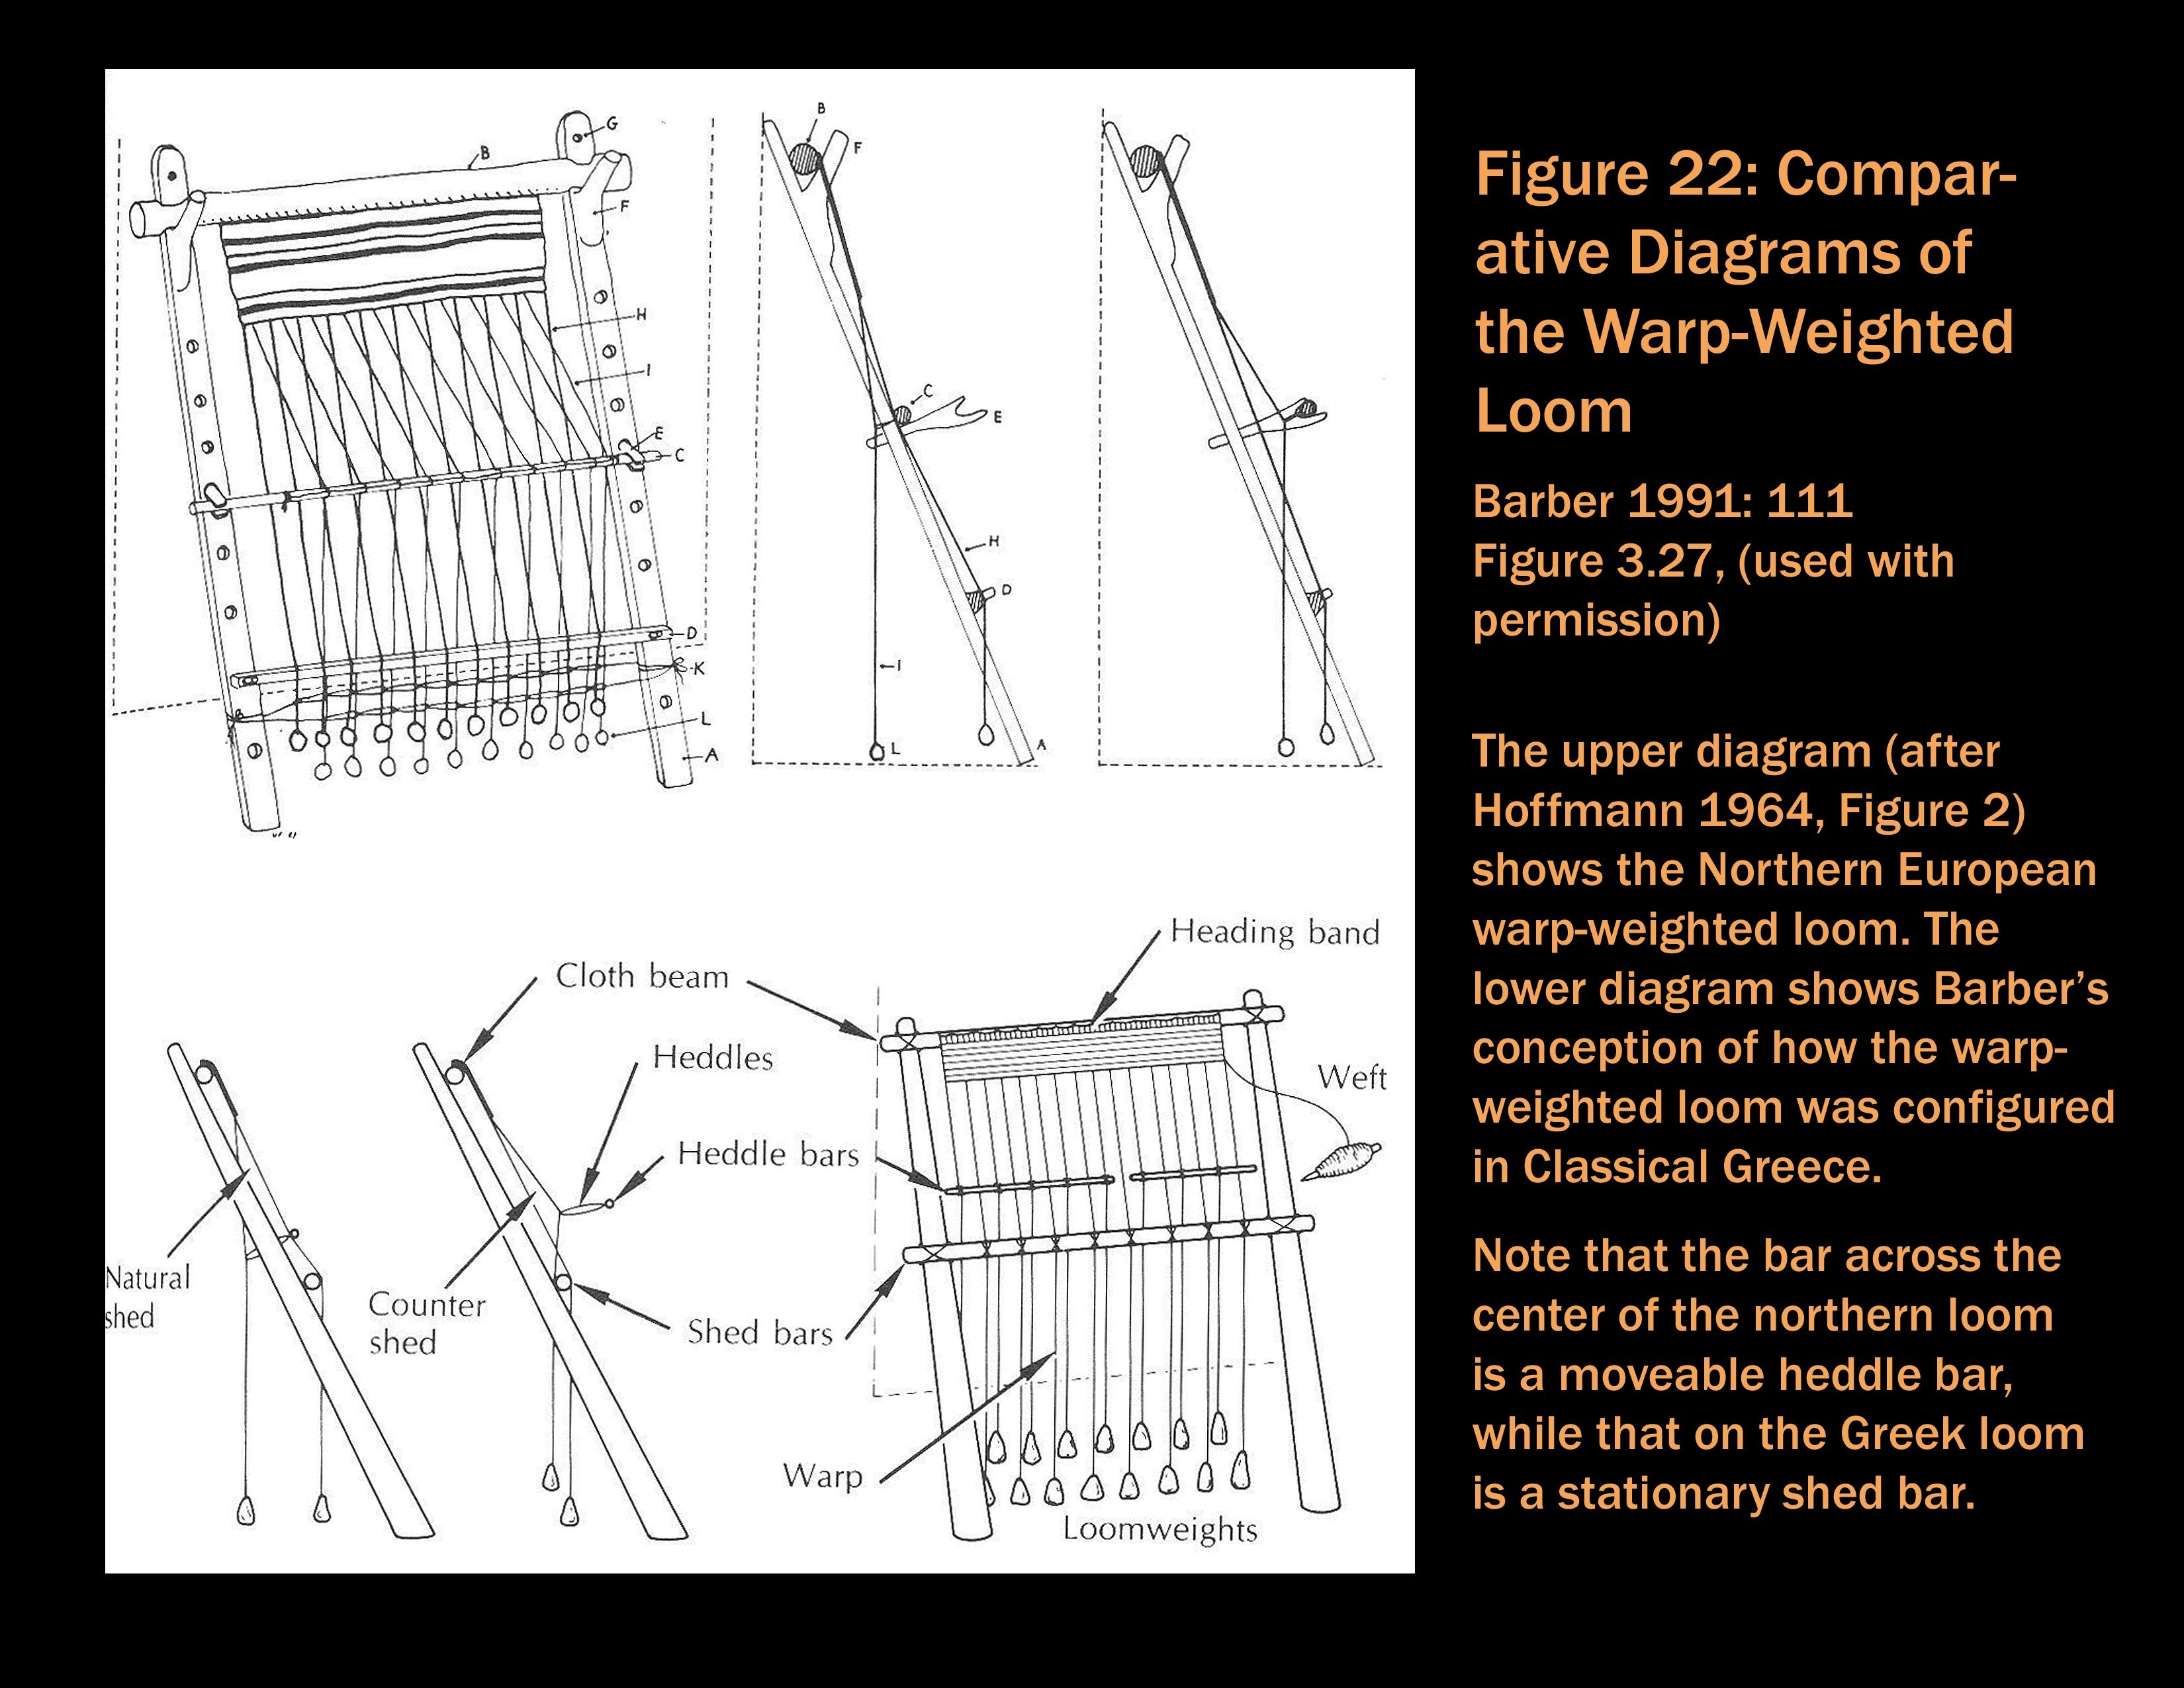 a0aad140d0e8318688a579b5fbe0d95b comparison scandinavian and ancient greek warp weighted looms